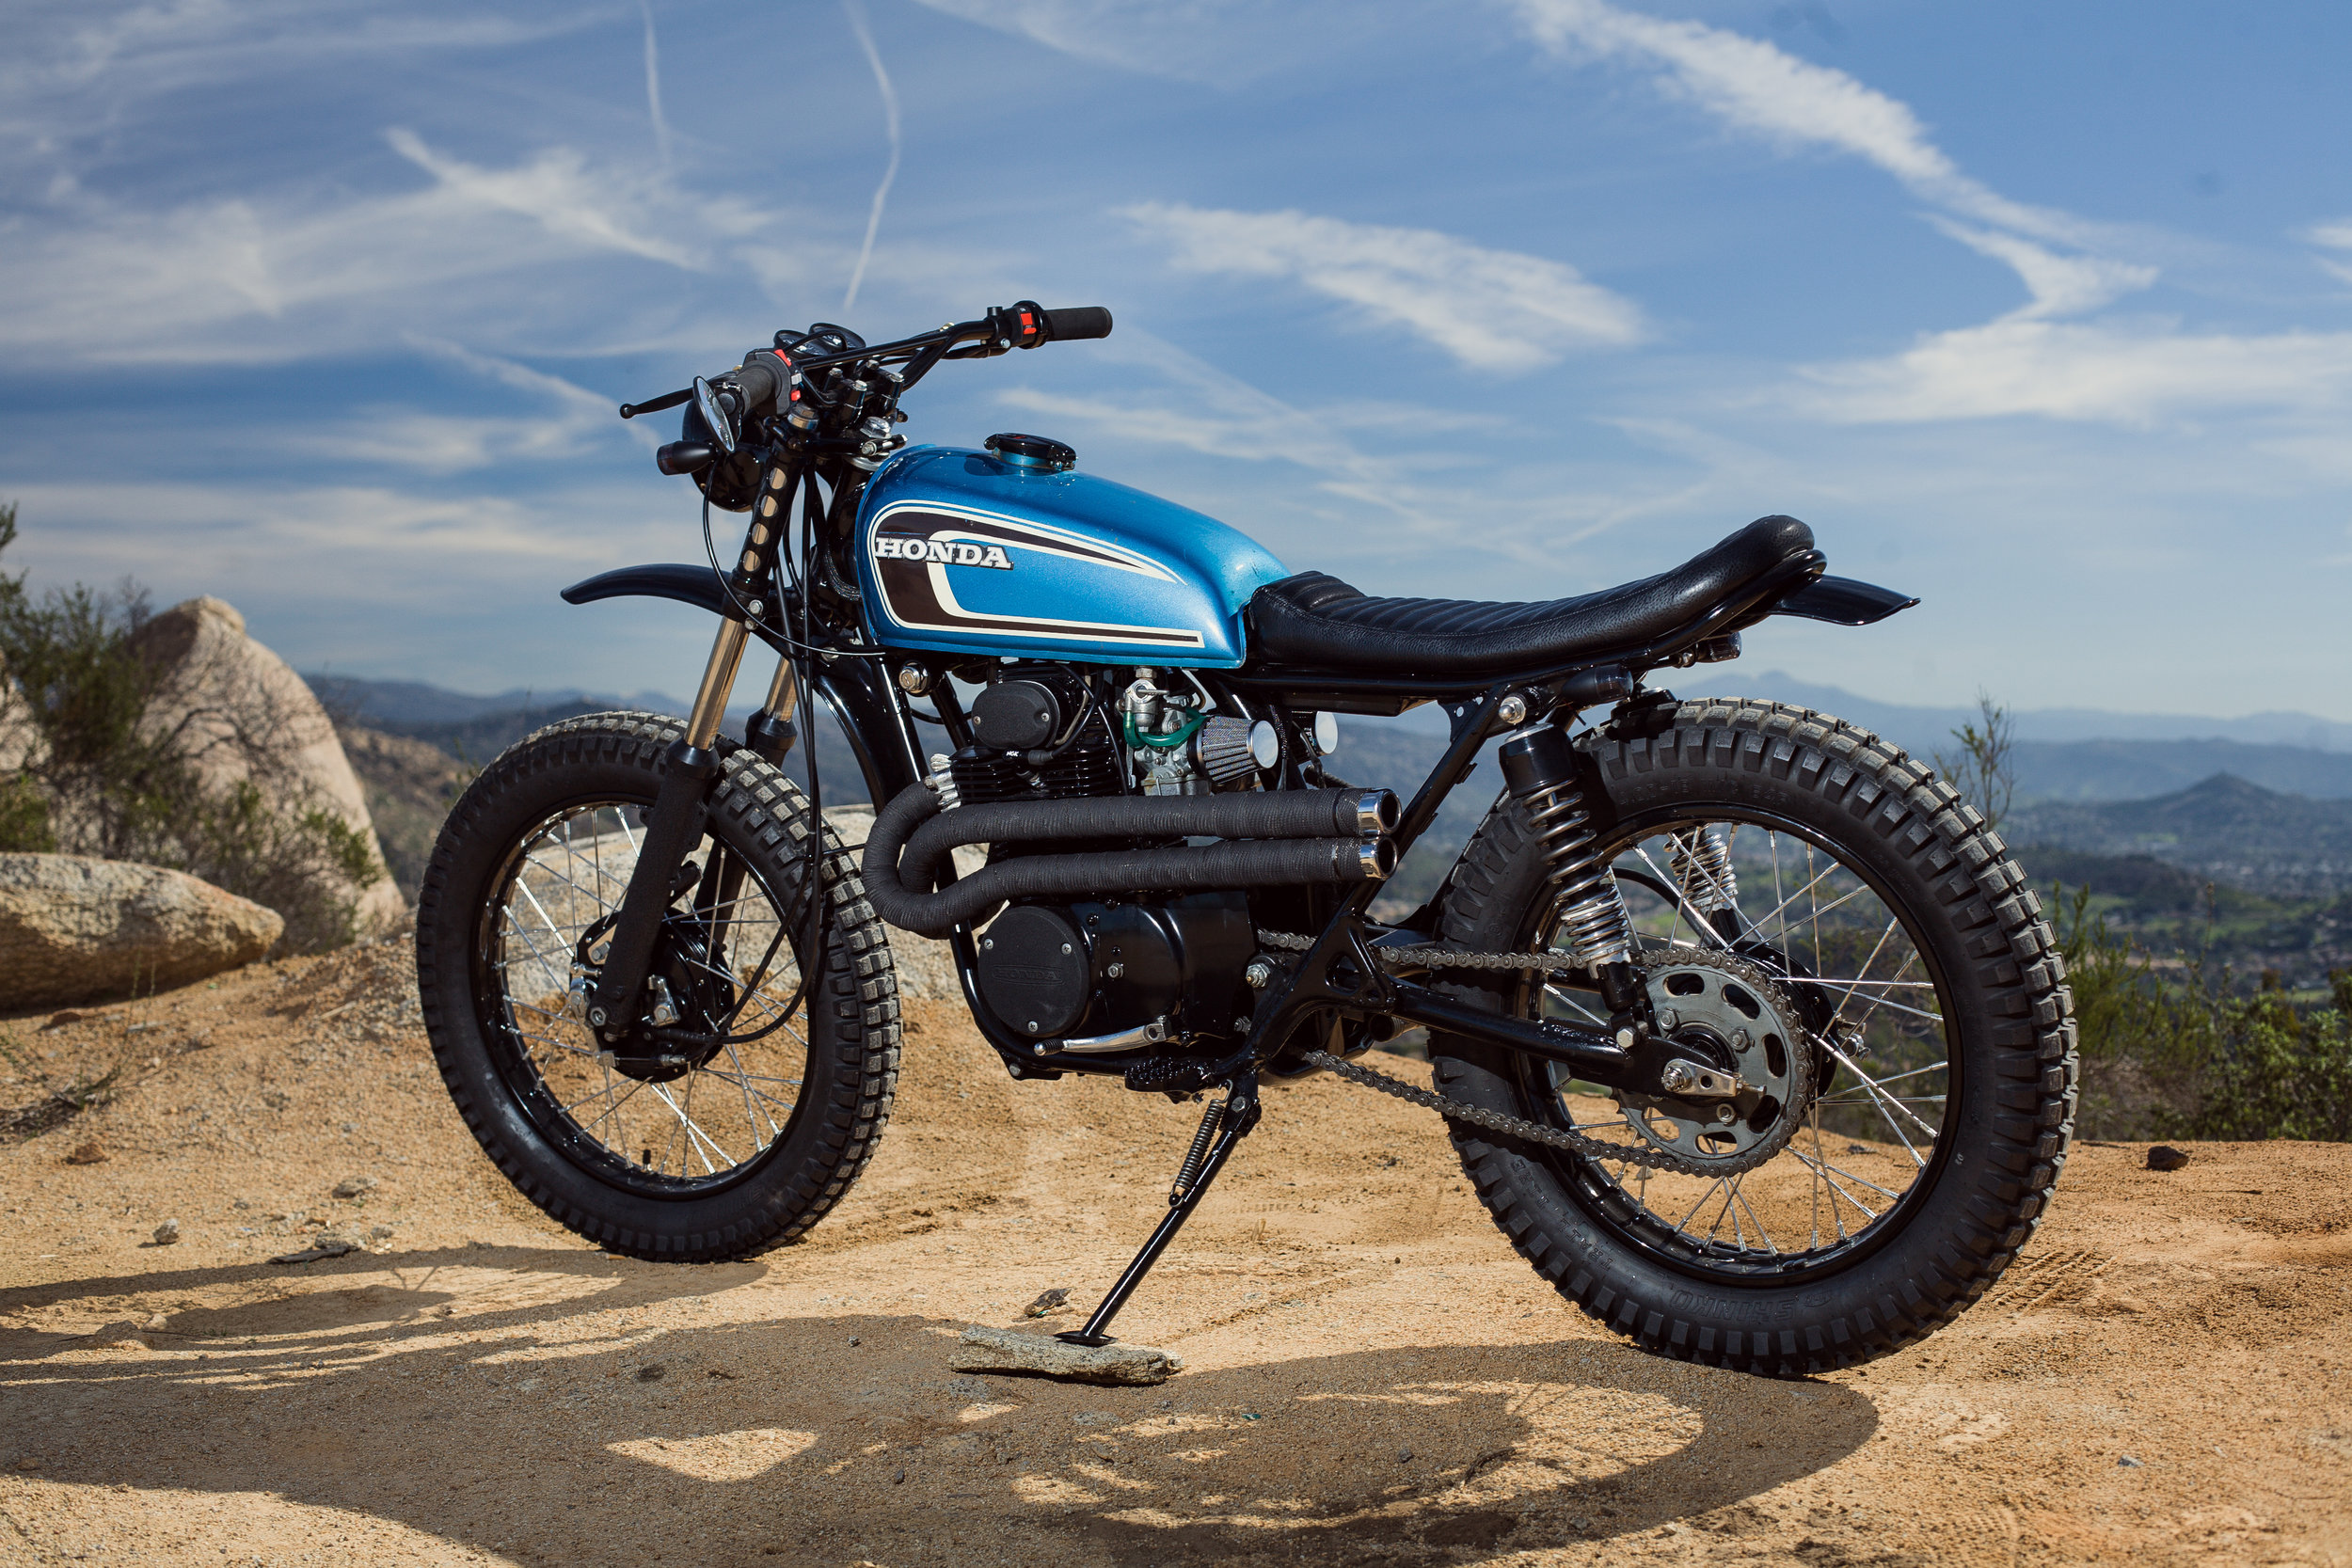 """This is the third SL350 we have built in this basic style. They were the premier off road bike of the day, and still perform pretty well with the vintage styling that we love. We have used the tank from a CB360 on all three builds. The seat pan, foam, upholstery is all custom and done in house. The front fender is from a CX500 but has been shortened by about 6"""". New chrome spokes and black powder coated wheels pair nicely. The headers are from a CL350 from the same era. Wrapped in DEI Titanium header wrap, they stay cool for your left leg while riding. Here are links to these products:    Header Wrap      Rear Tire      Front Tire"""